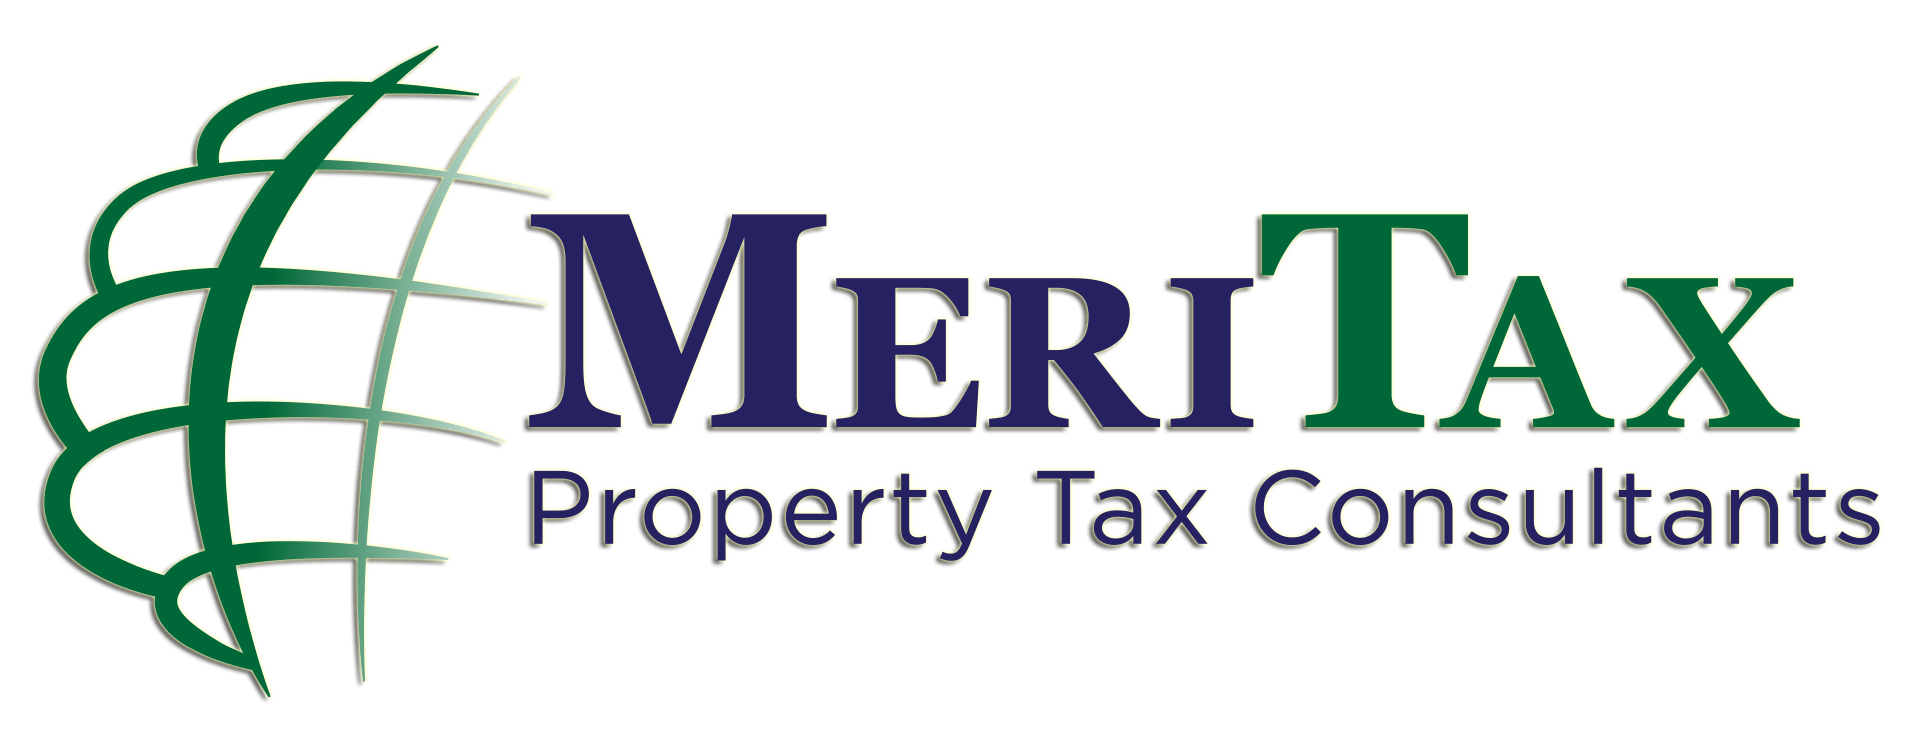 Property Tax Consultant Cover Letter - Cover Letter Resume ...